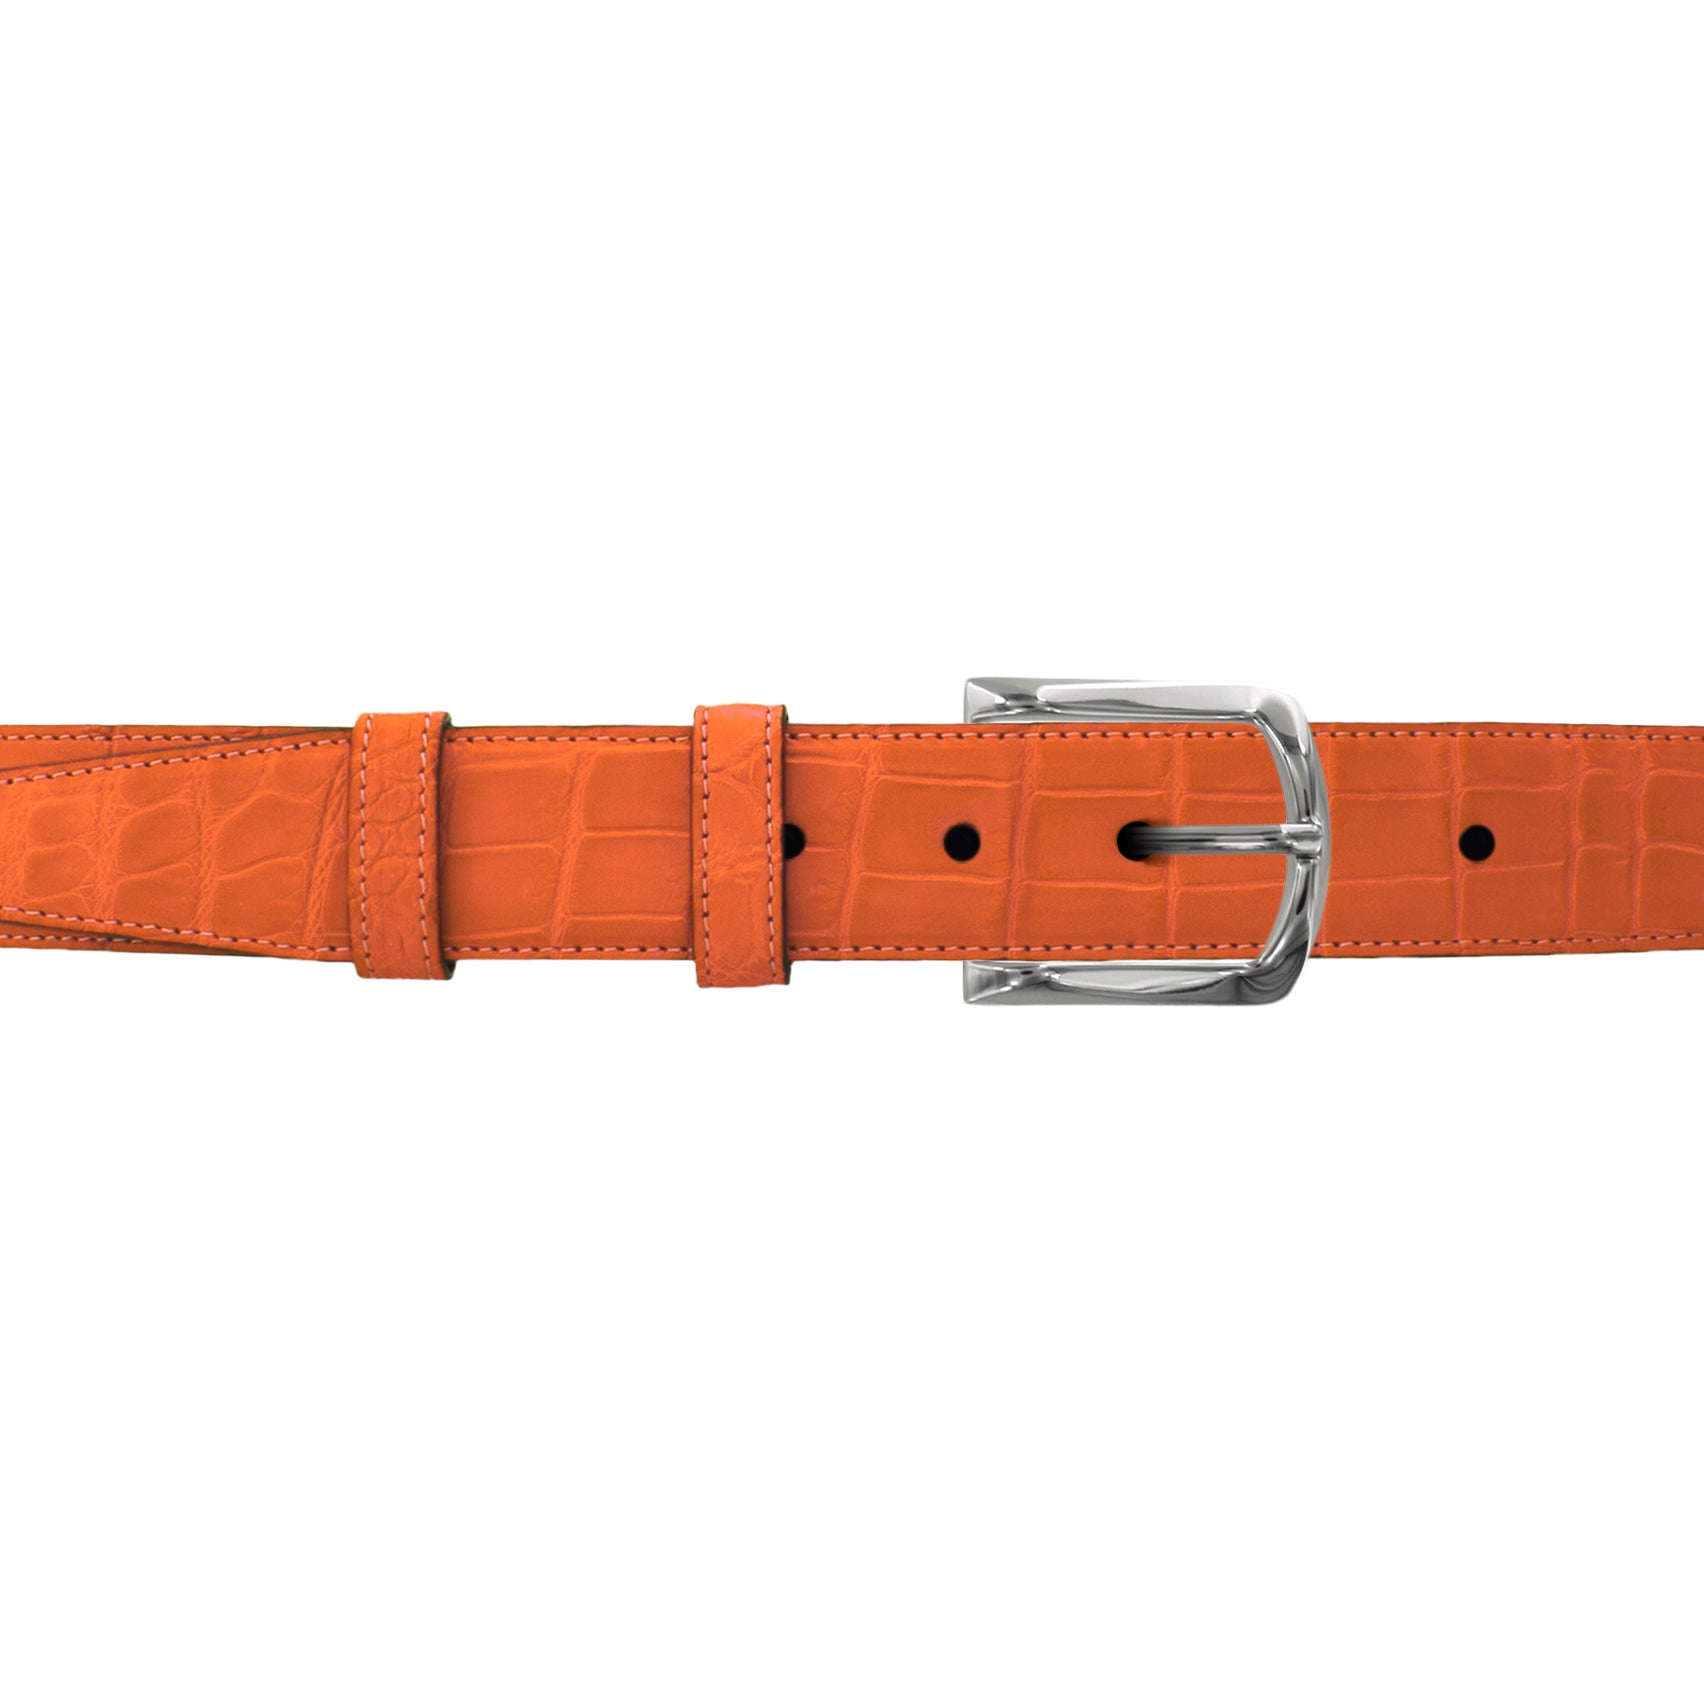 "1 1/4"" Orange Seasonal Belt with Sutton Dress Buckle in Polished Nickel"